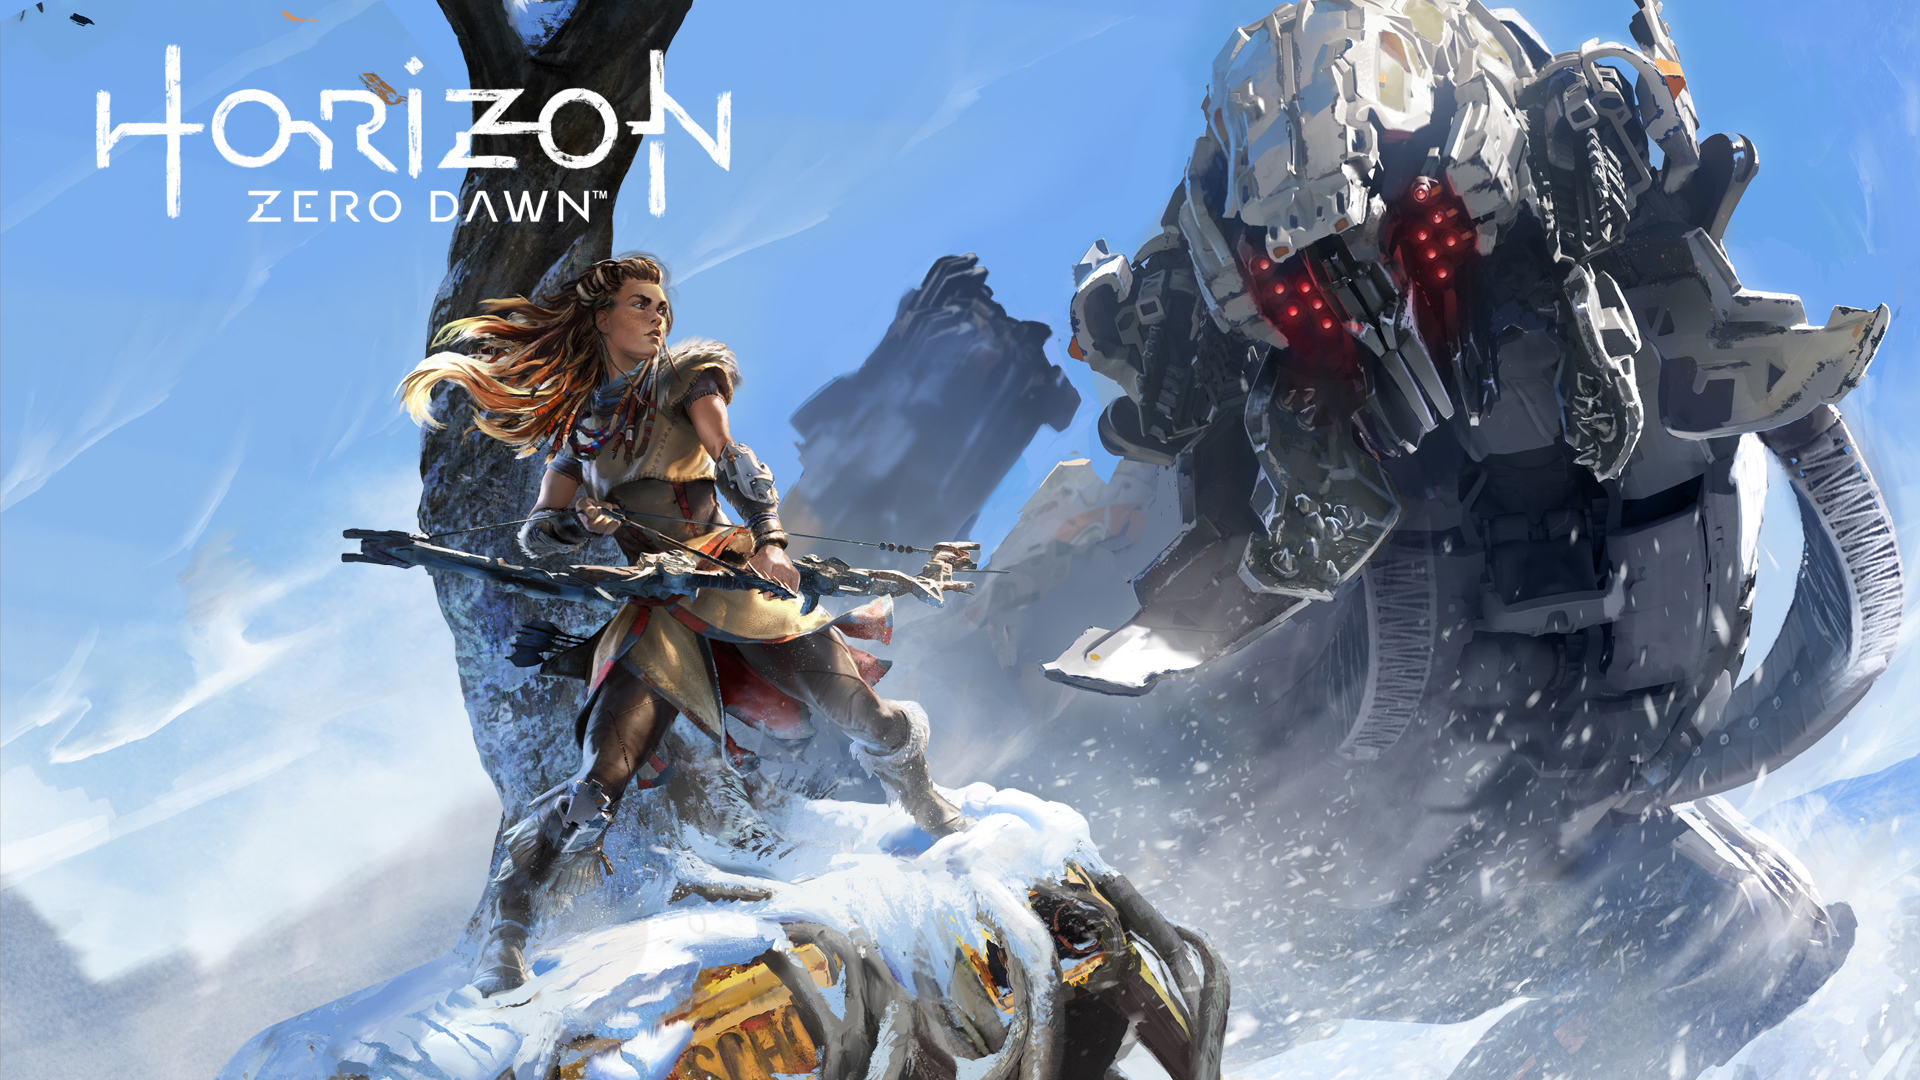 Horizon Zero Dawn Wallpaper HD 2016